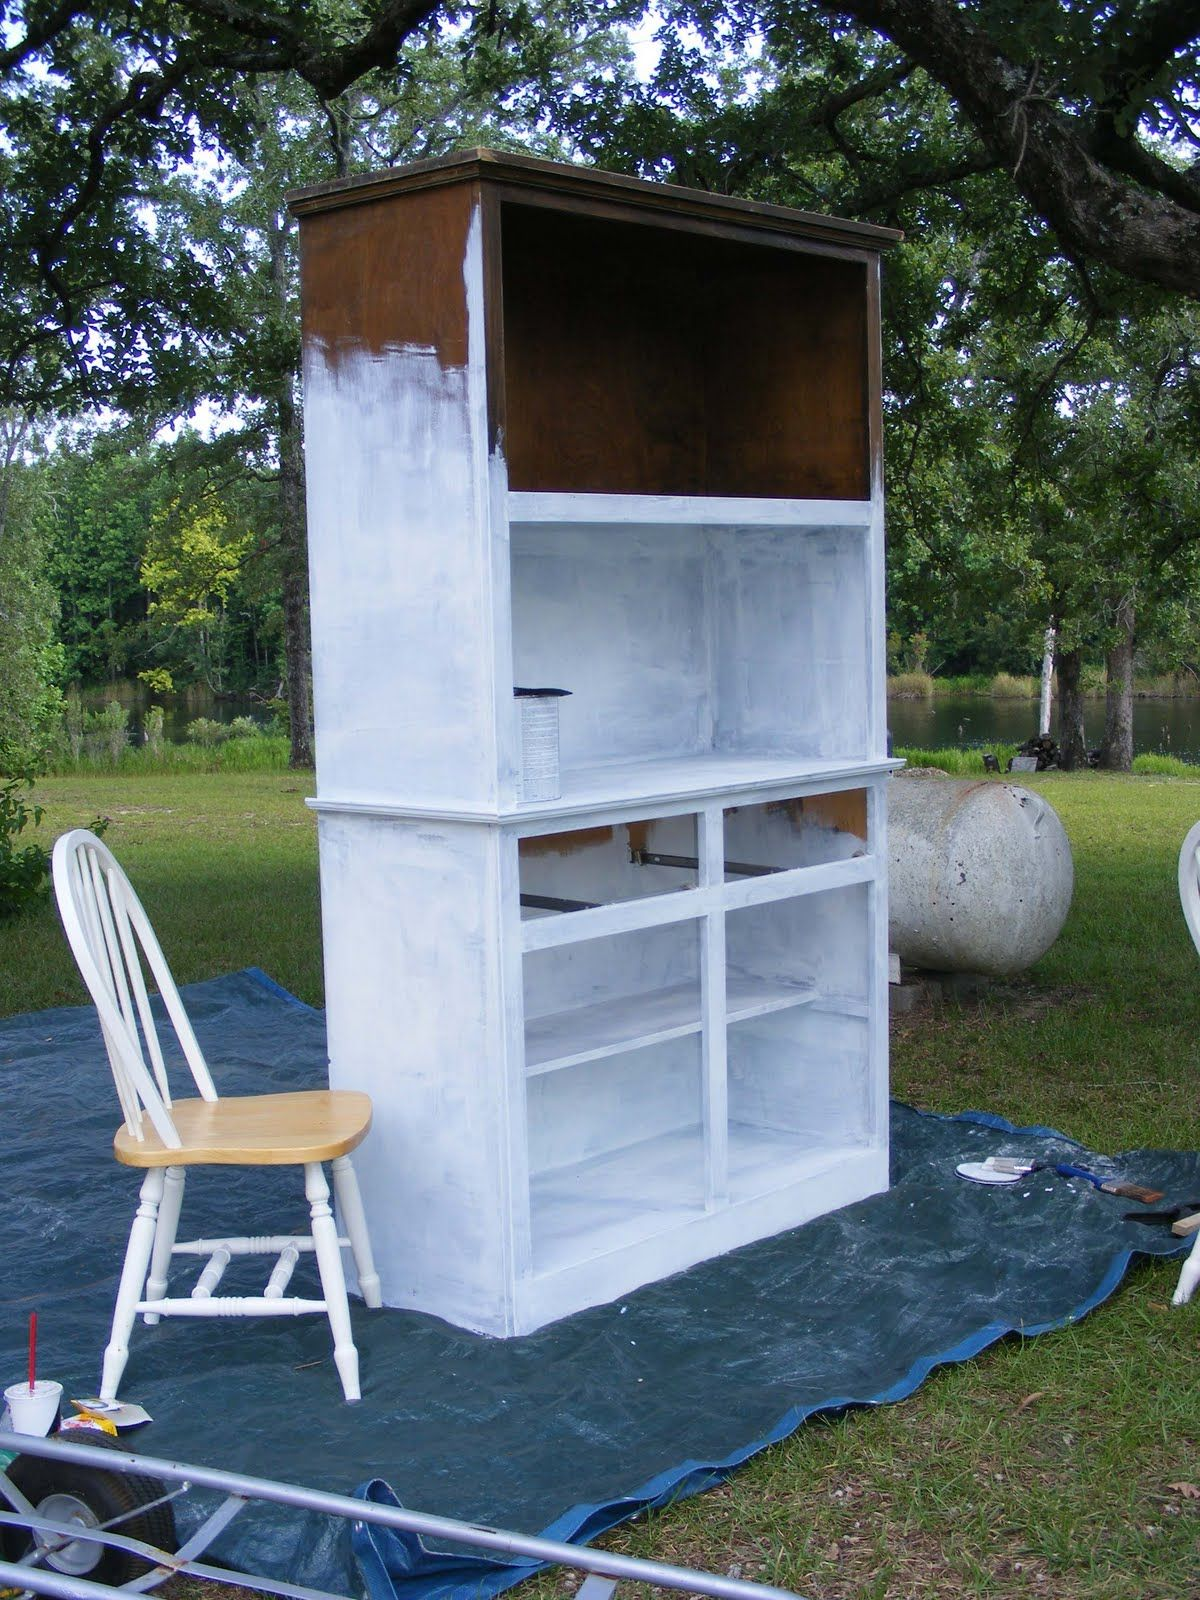 The Best Primer For Painting Furniture Refinishing Furniture Paint Furniture Furniture Restoration